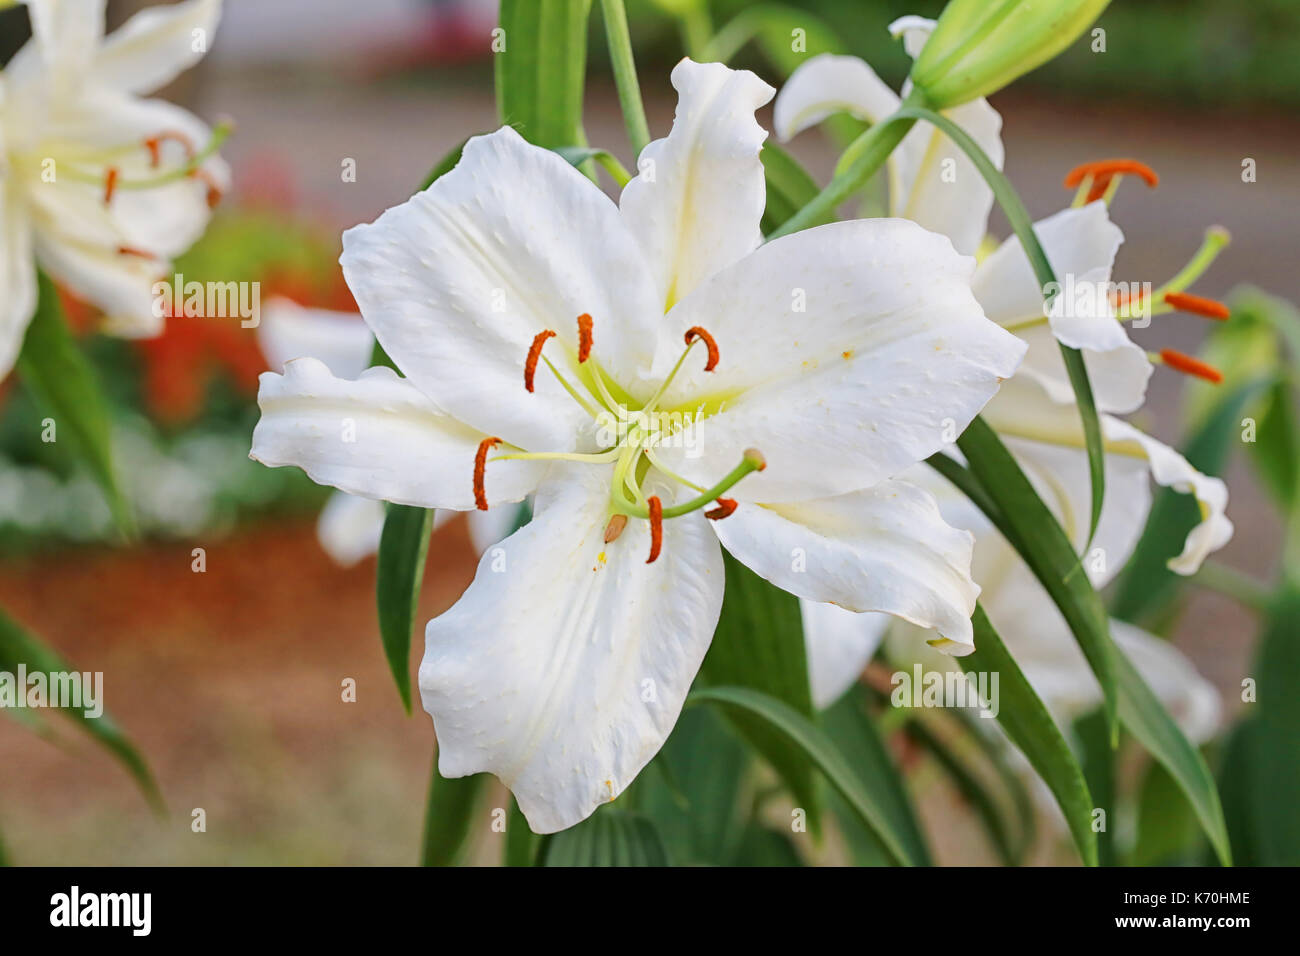 Lily flower of white color bloom in the garden stock photo royalty lily flower of white color bloom in the garden izmirmasajfo Choice Image